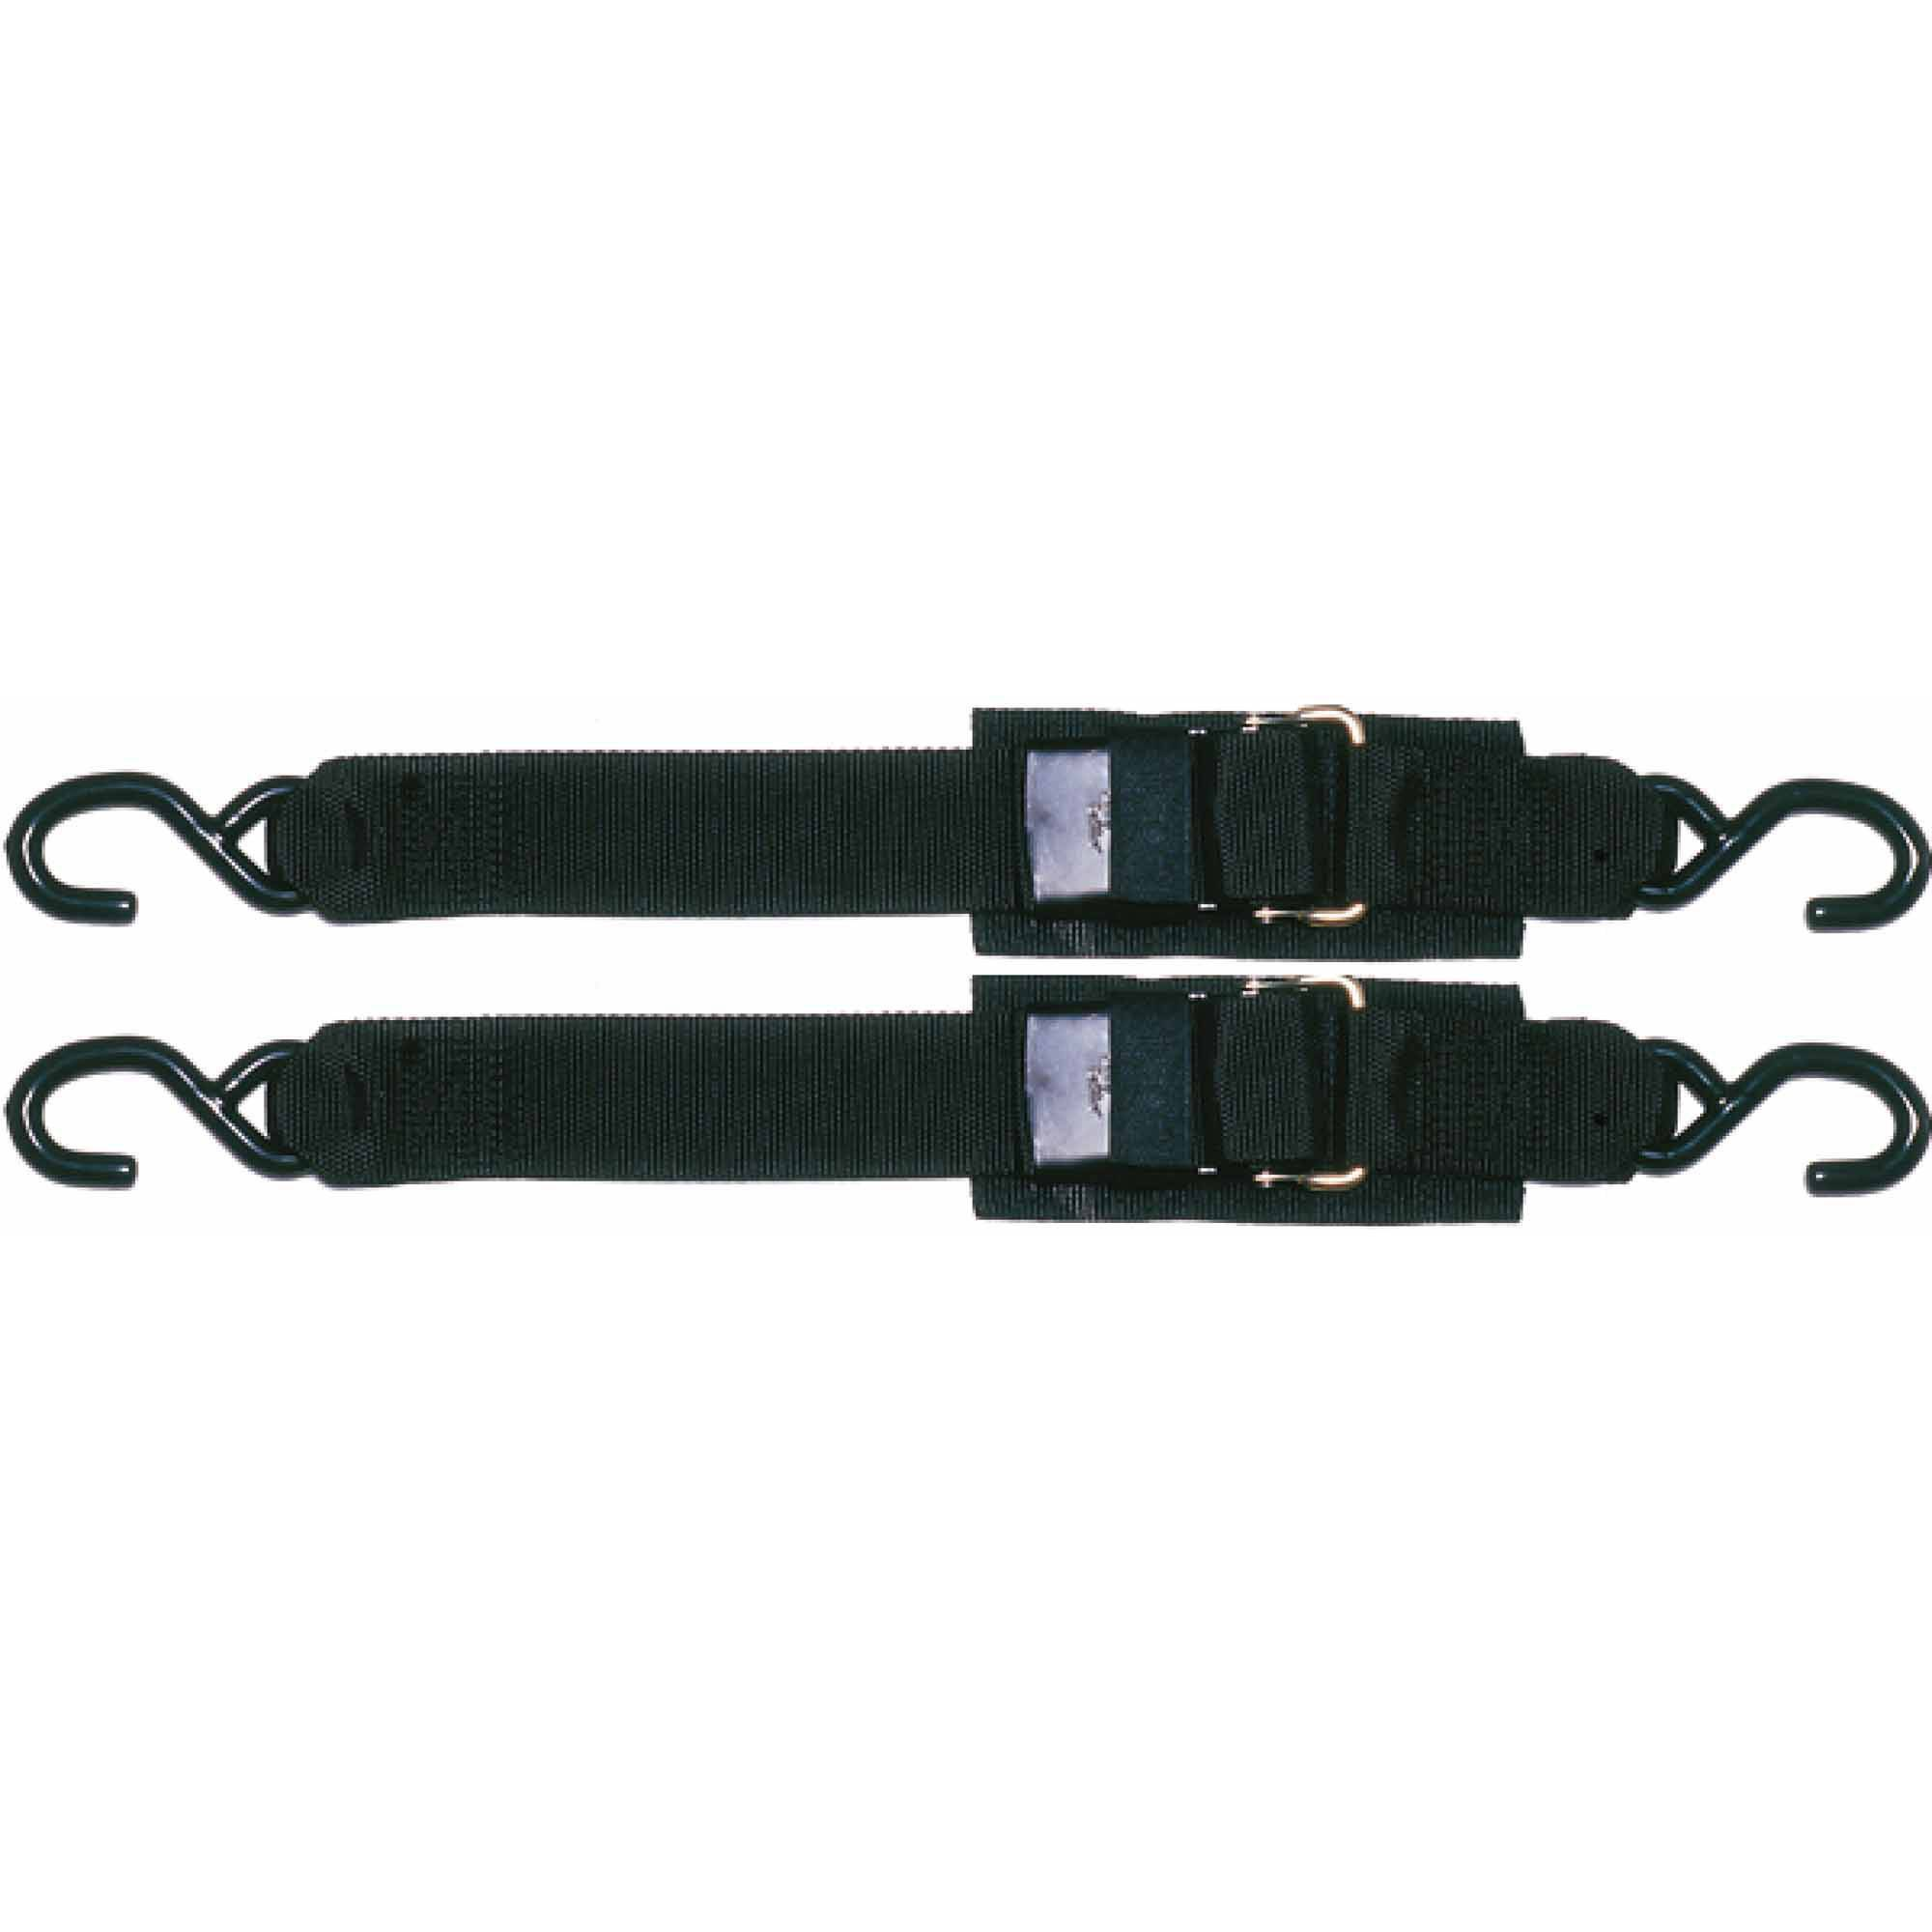 "Sta-Put 2"" Transom Tie Down with Quick Release Buckle, 2-Pack"